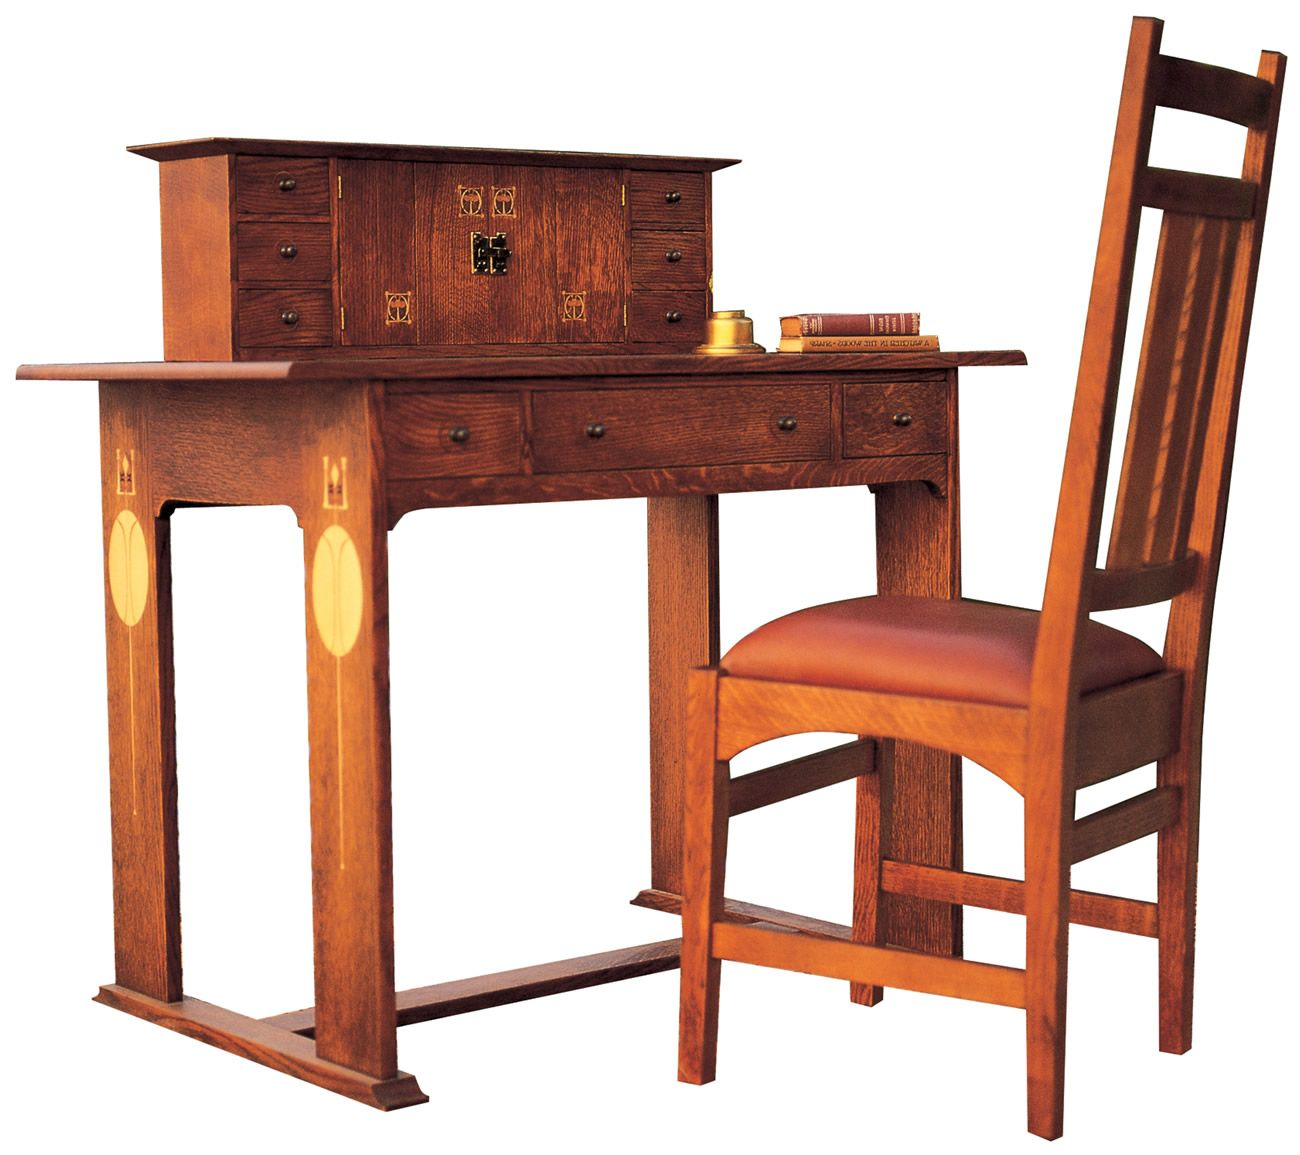 Mission Style Furniture Denver: Stickley Furniture Harvey Ellis Desk & Chair With Inlay